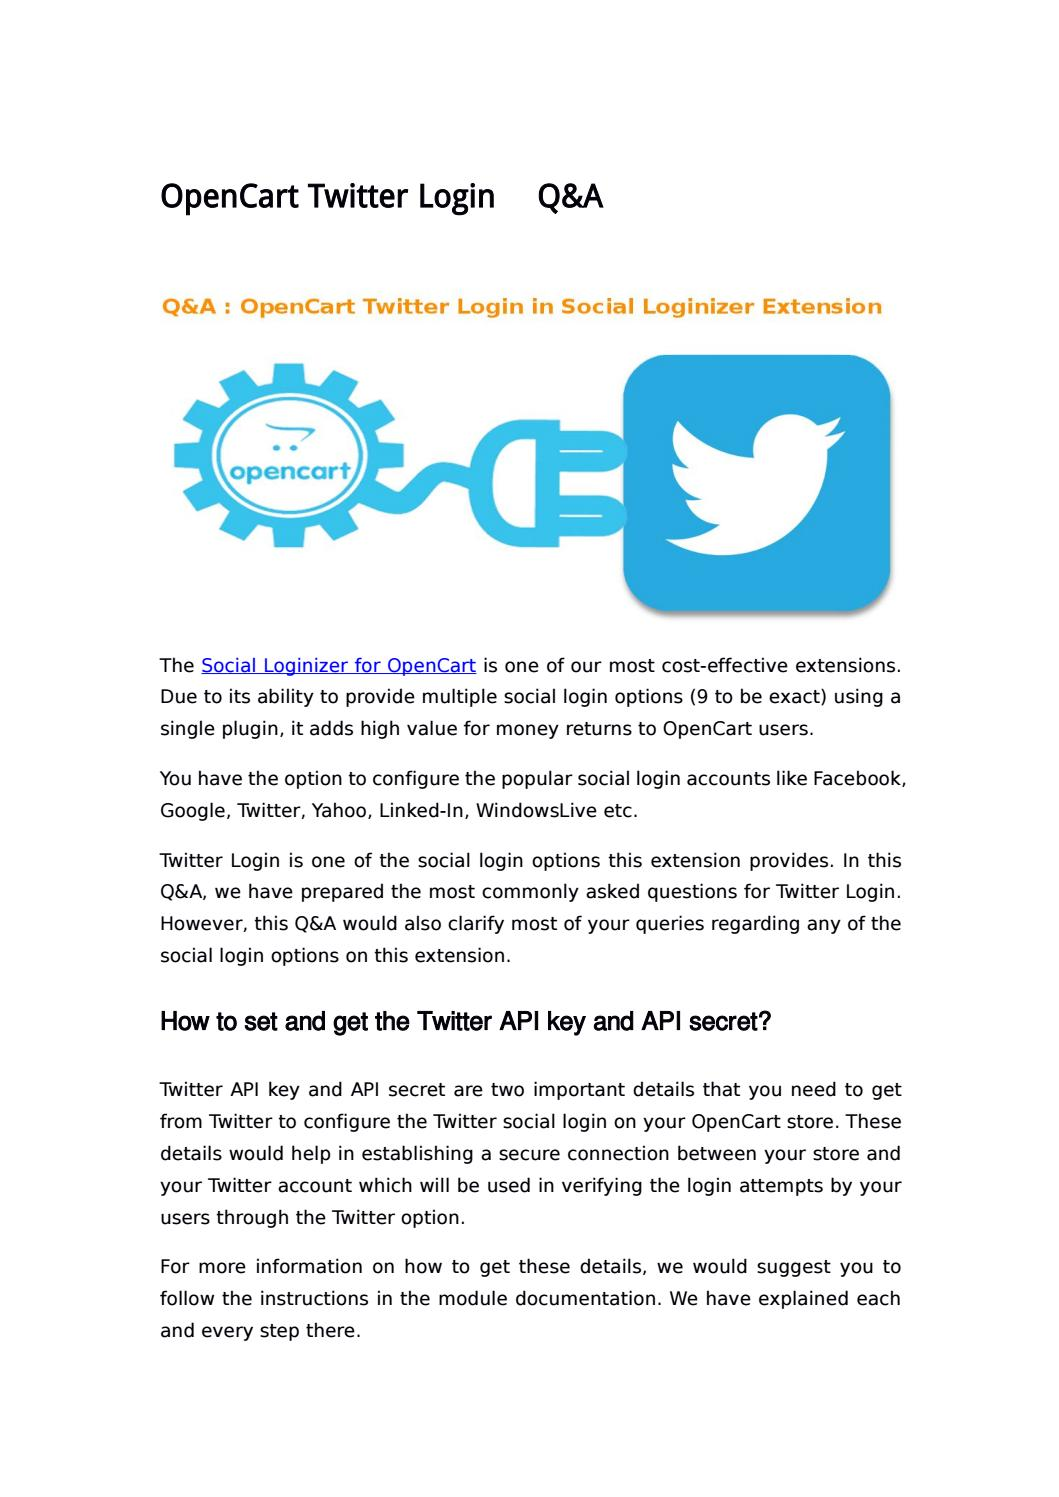 OpenCart Twitter Login- Q&A by Knowband - issuu